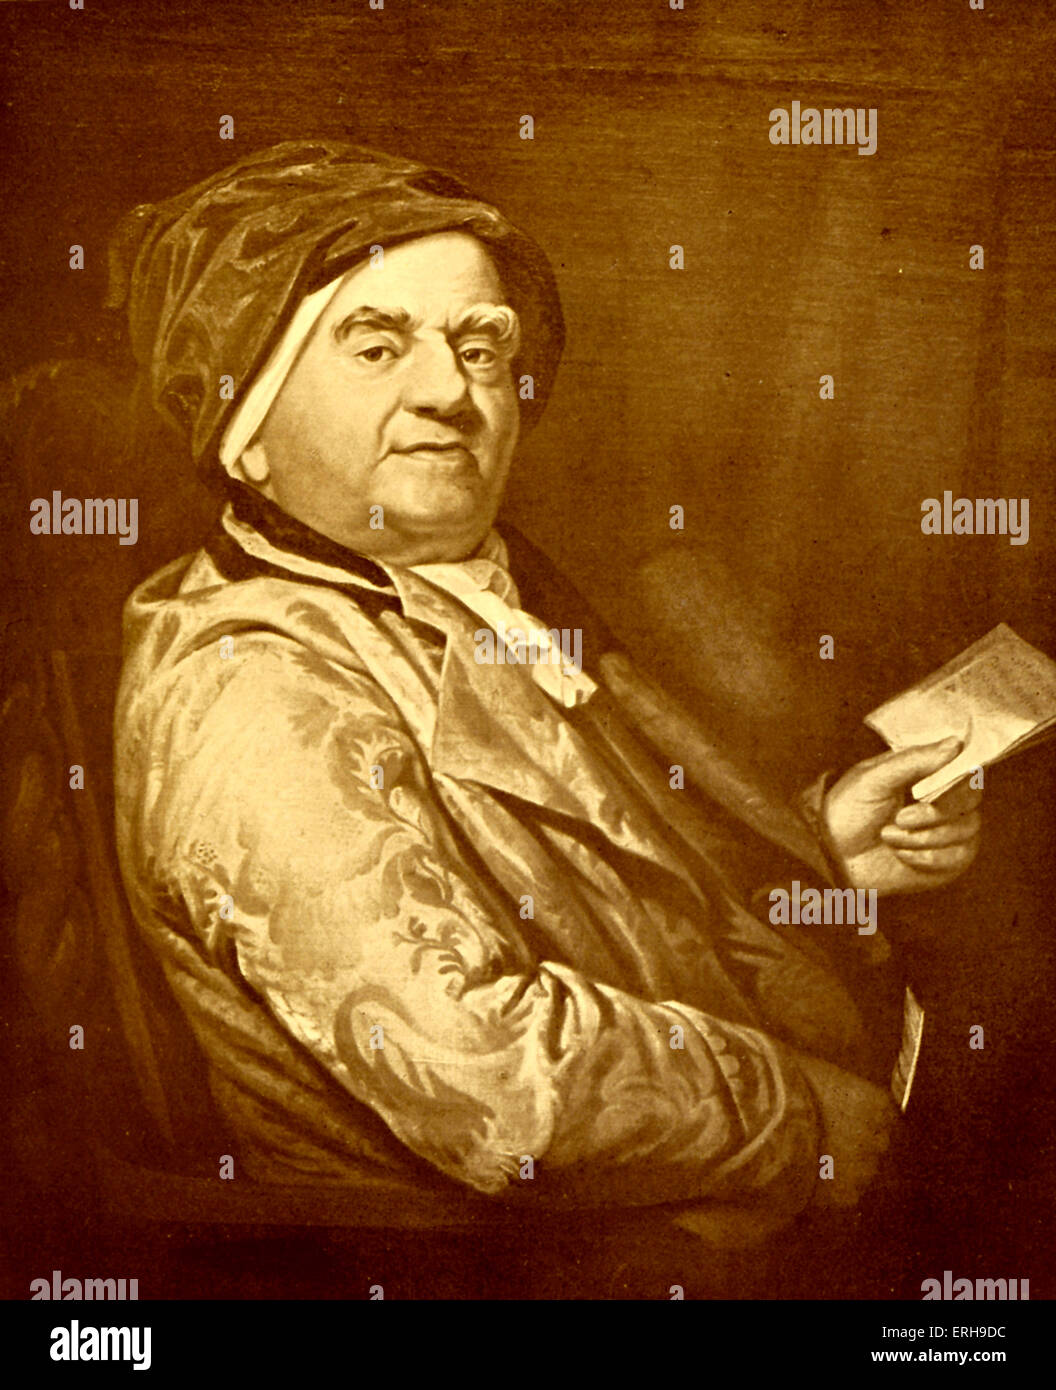 Samuel Parr  - English minister, schoolmaster and political writer.  26 January 1747 – 6 March 1825. - Stock Image